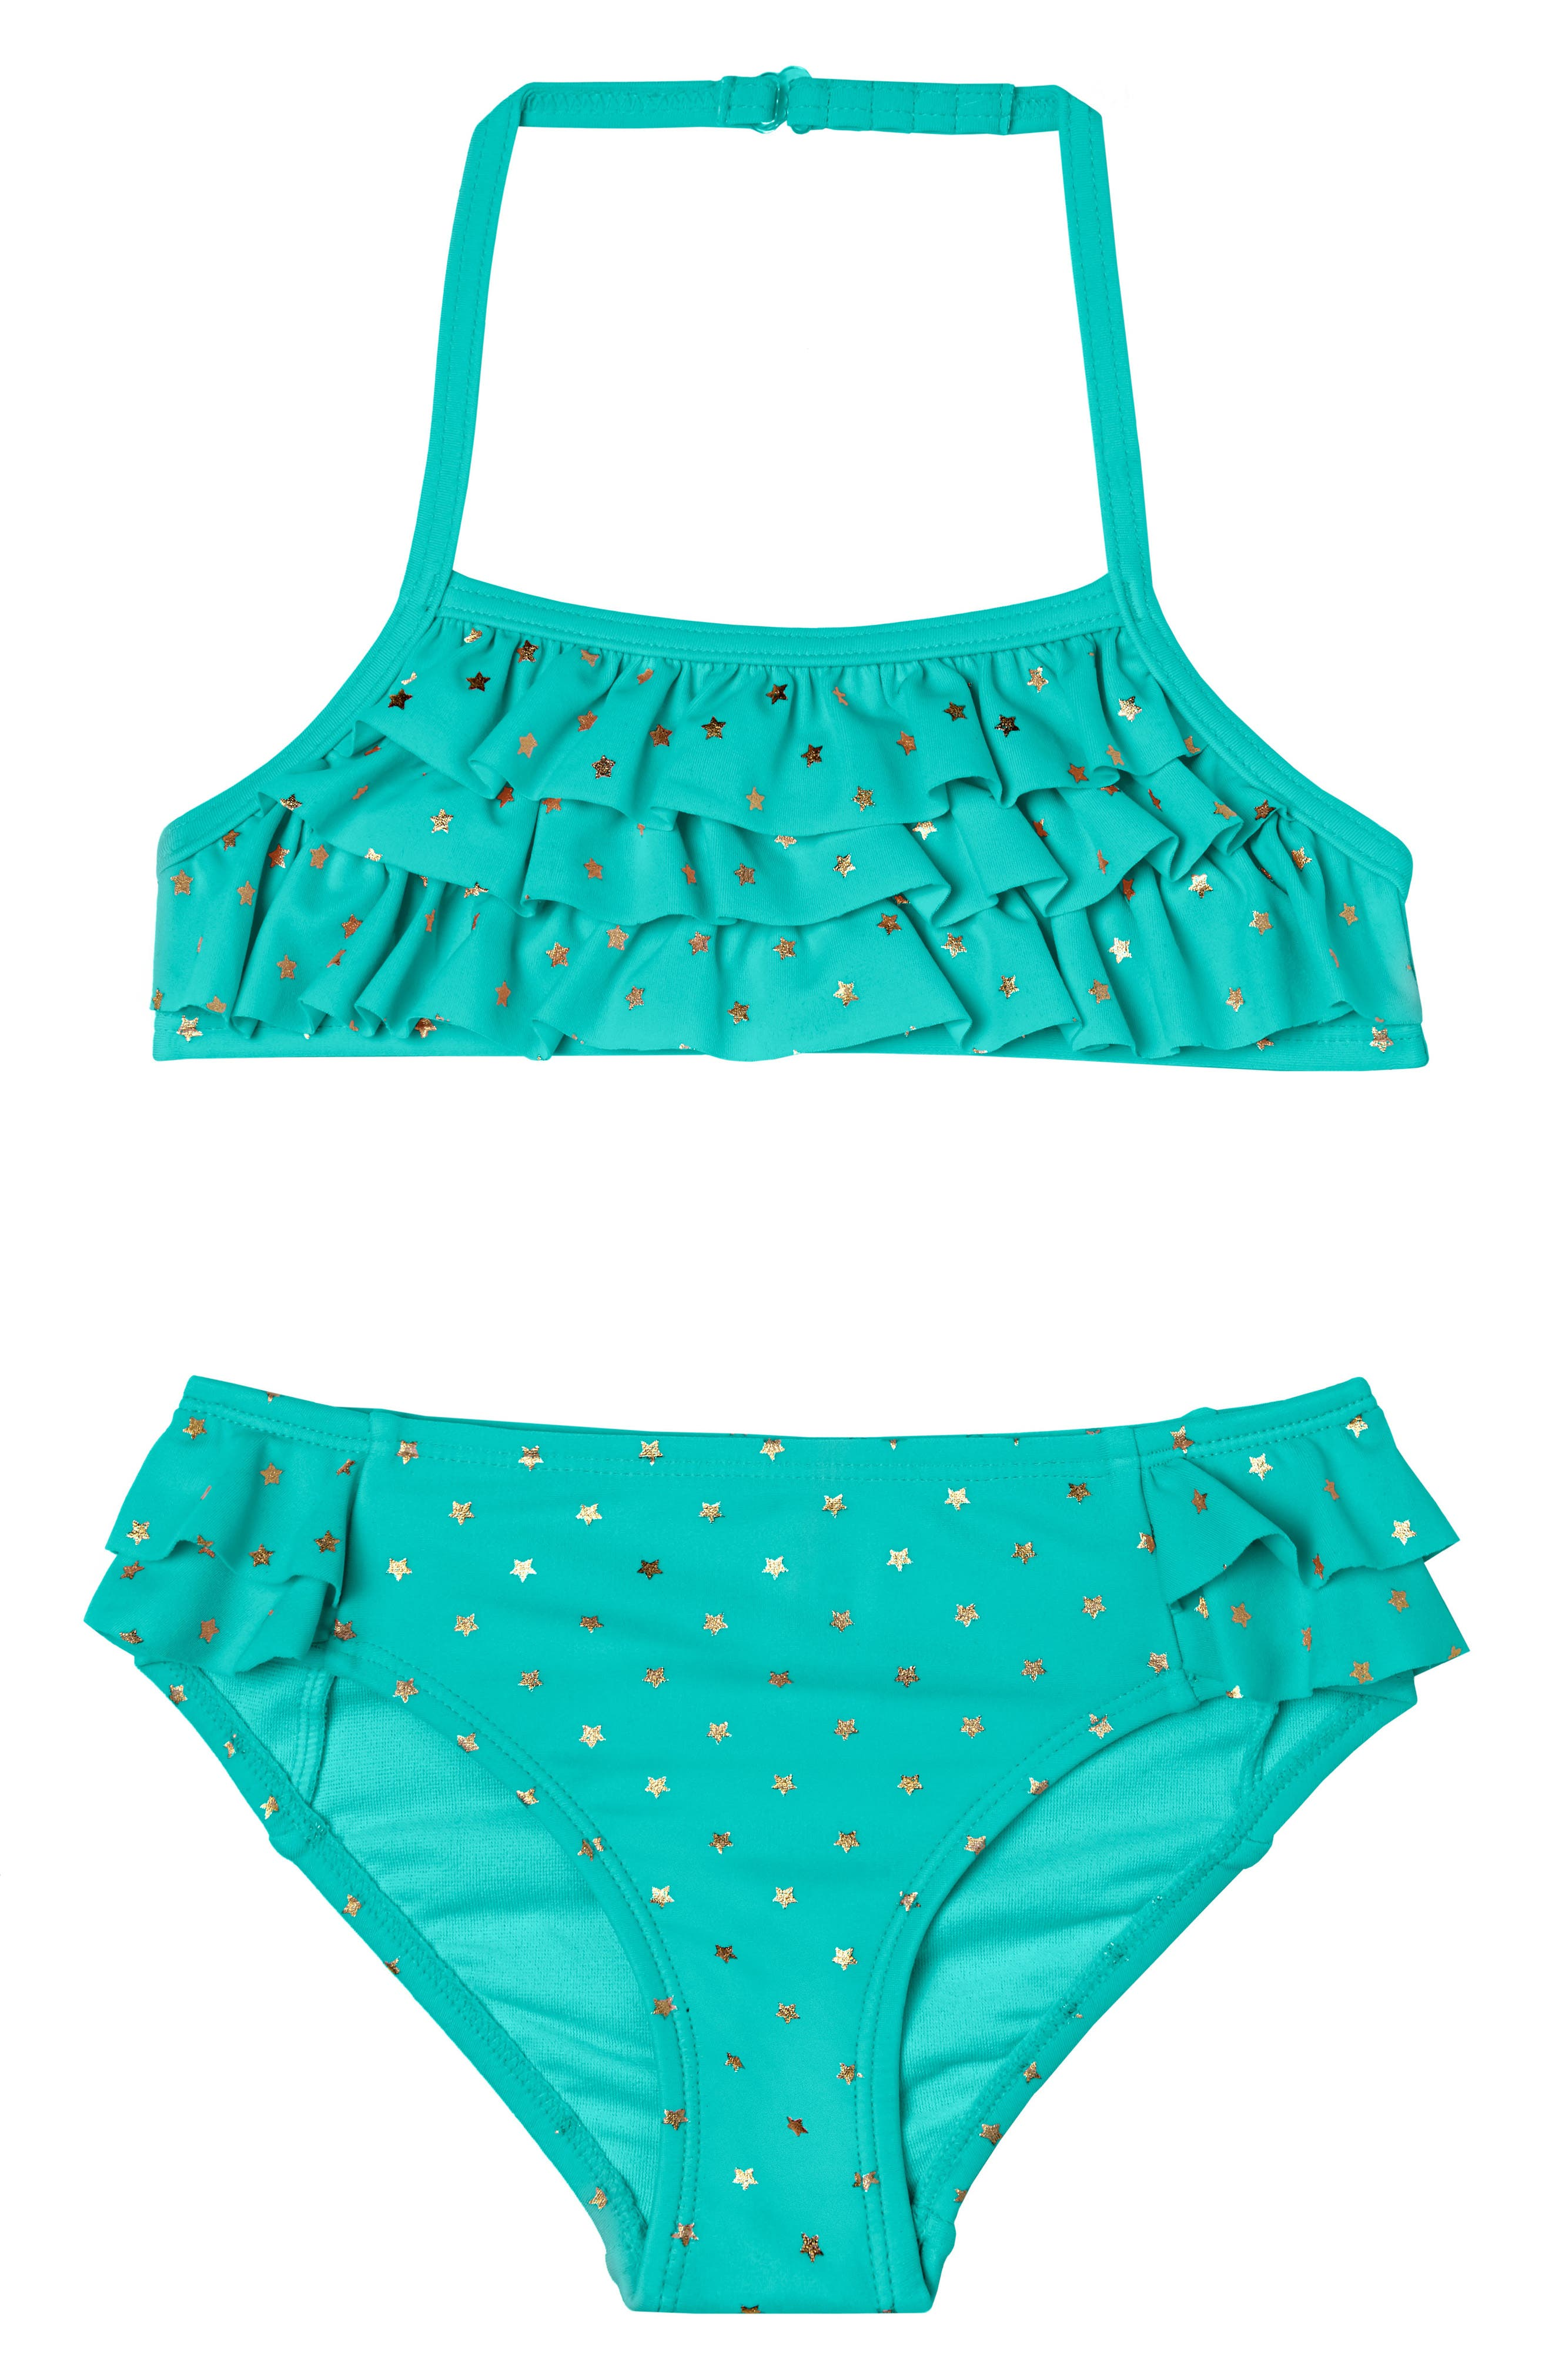 Main Image - Hula Star Twinkle Star Two-Piece Swimsuit (Toddler Girls & Little Girls)